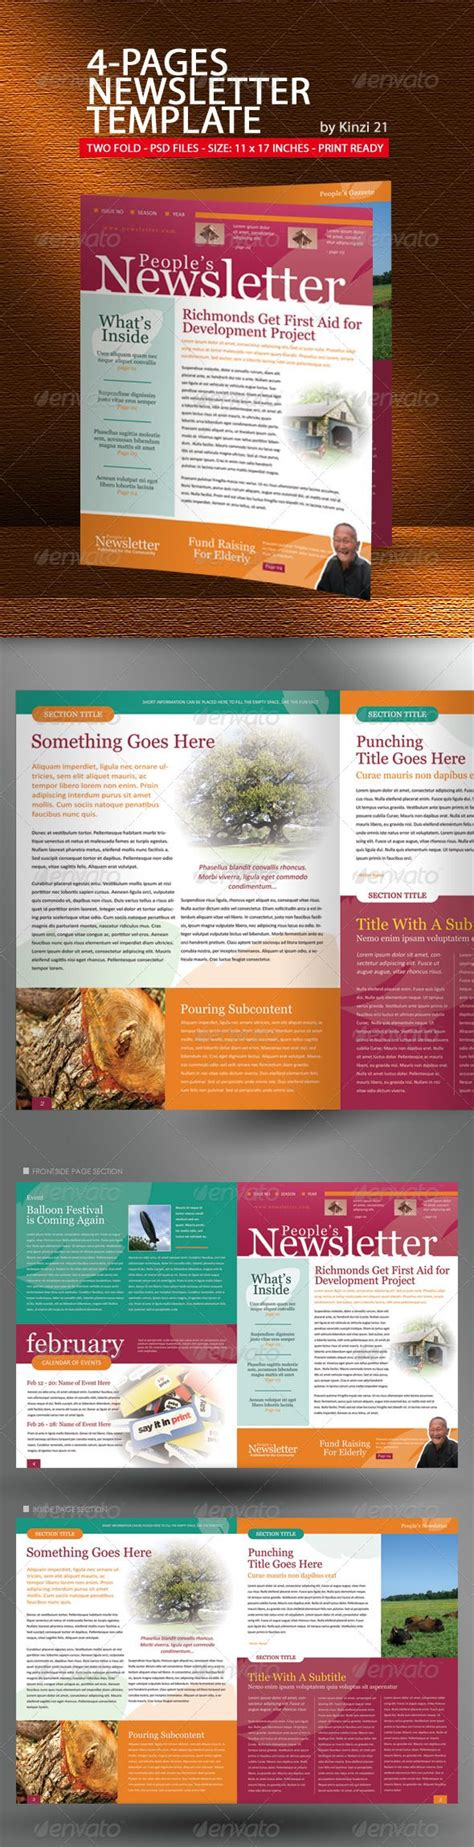 4 page newsletter template 25 best ideas about newsletter design on